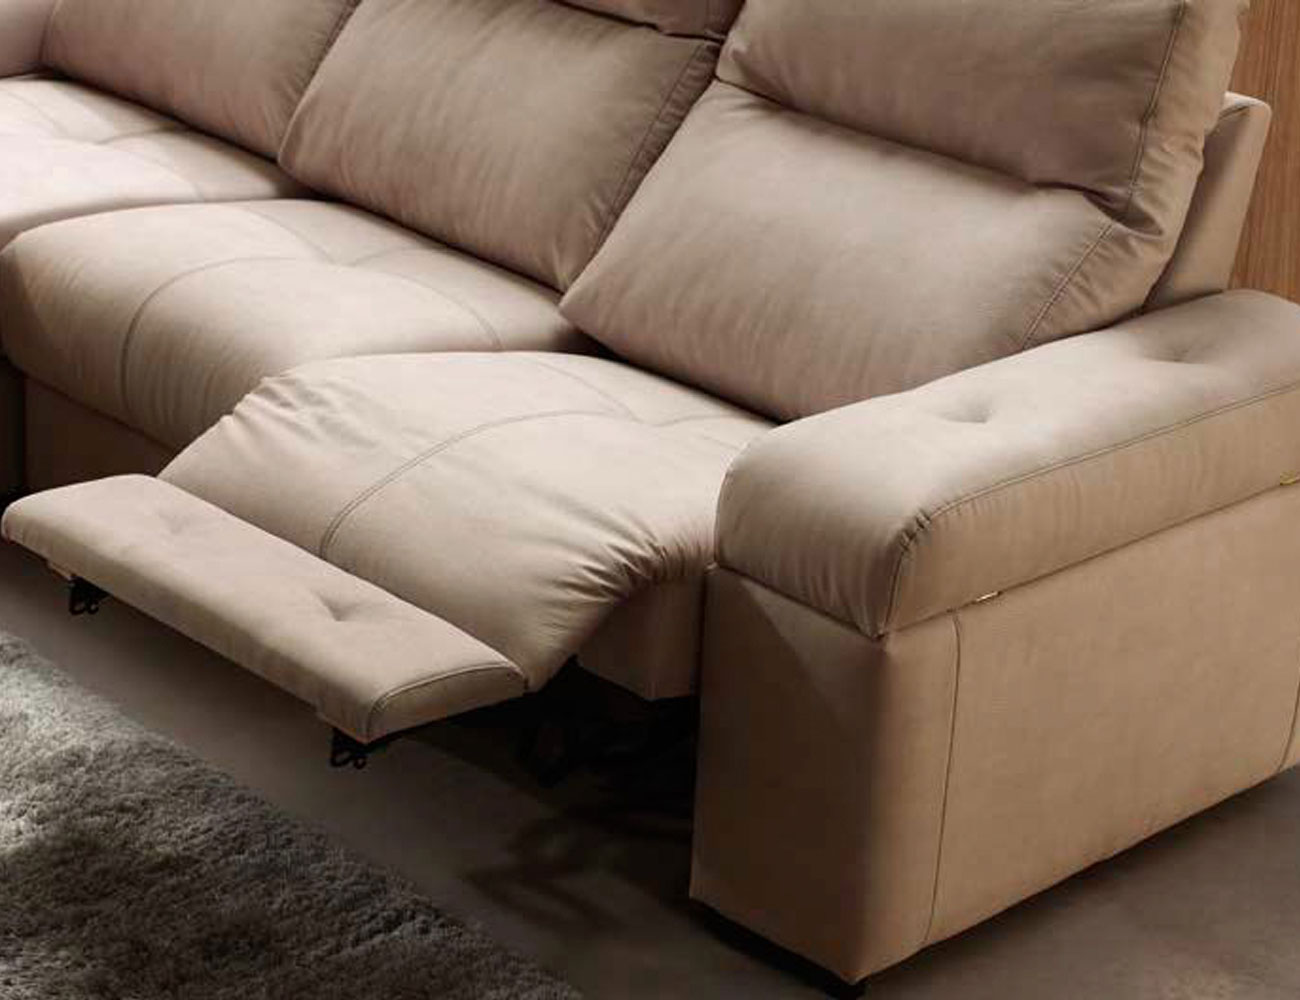 Sofa chaiselongue relax motor electrico 3 arcon 1 detalle